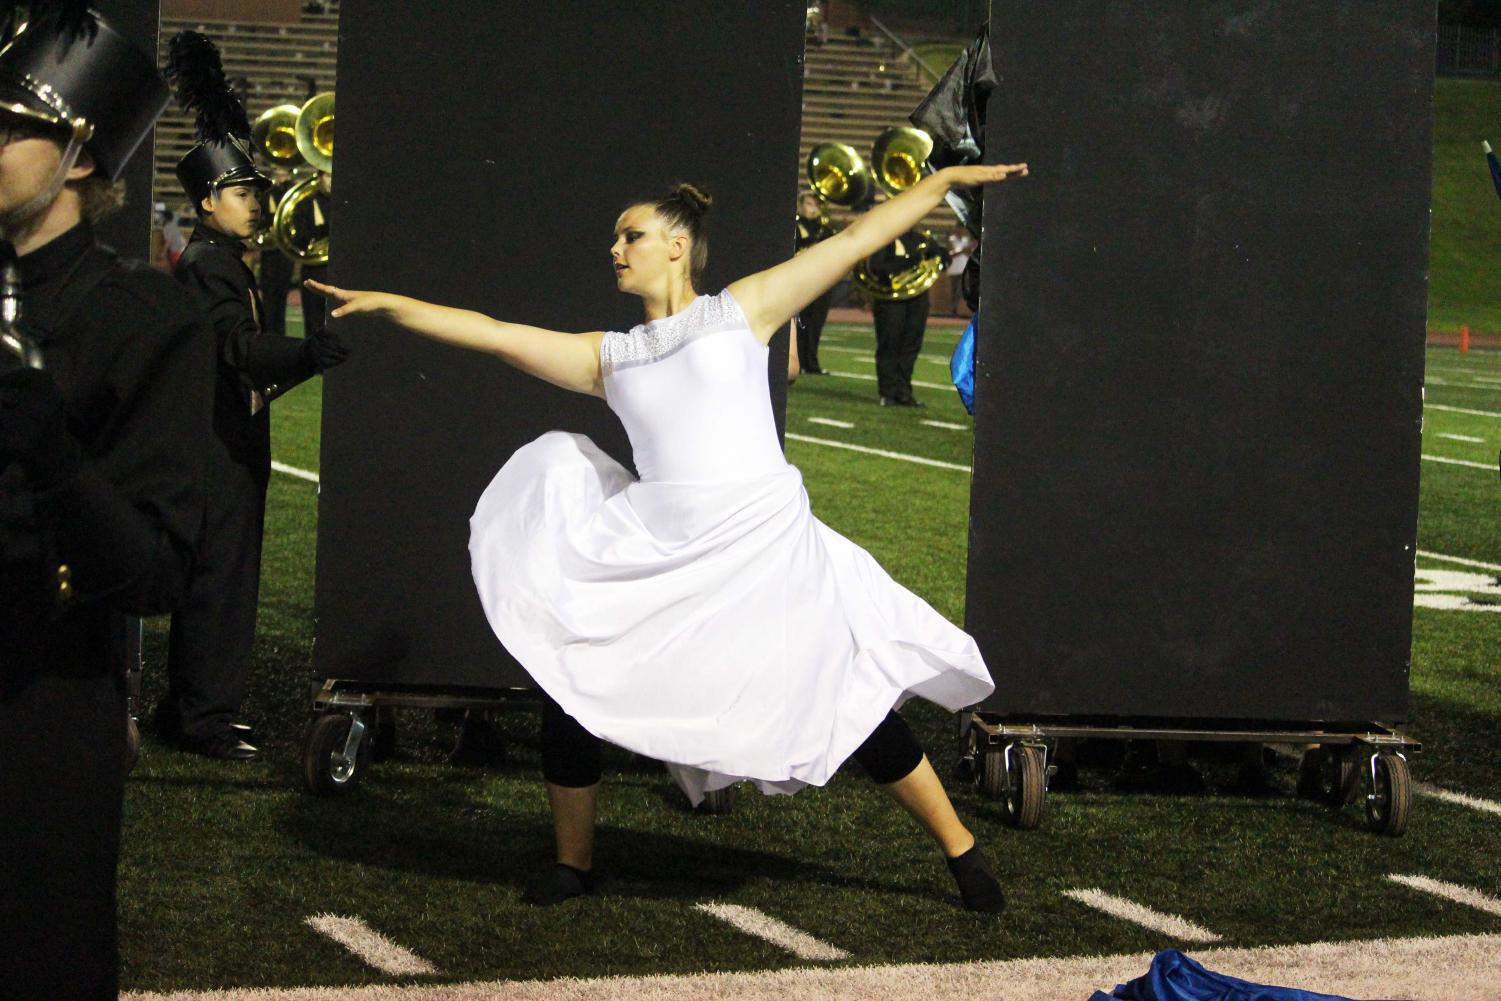 Aaryn Bivins performs at a halftime show  during The Annabelle Lee section of the show.